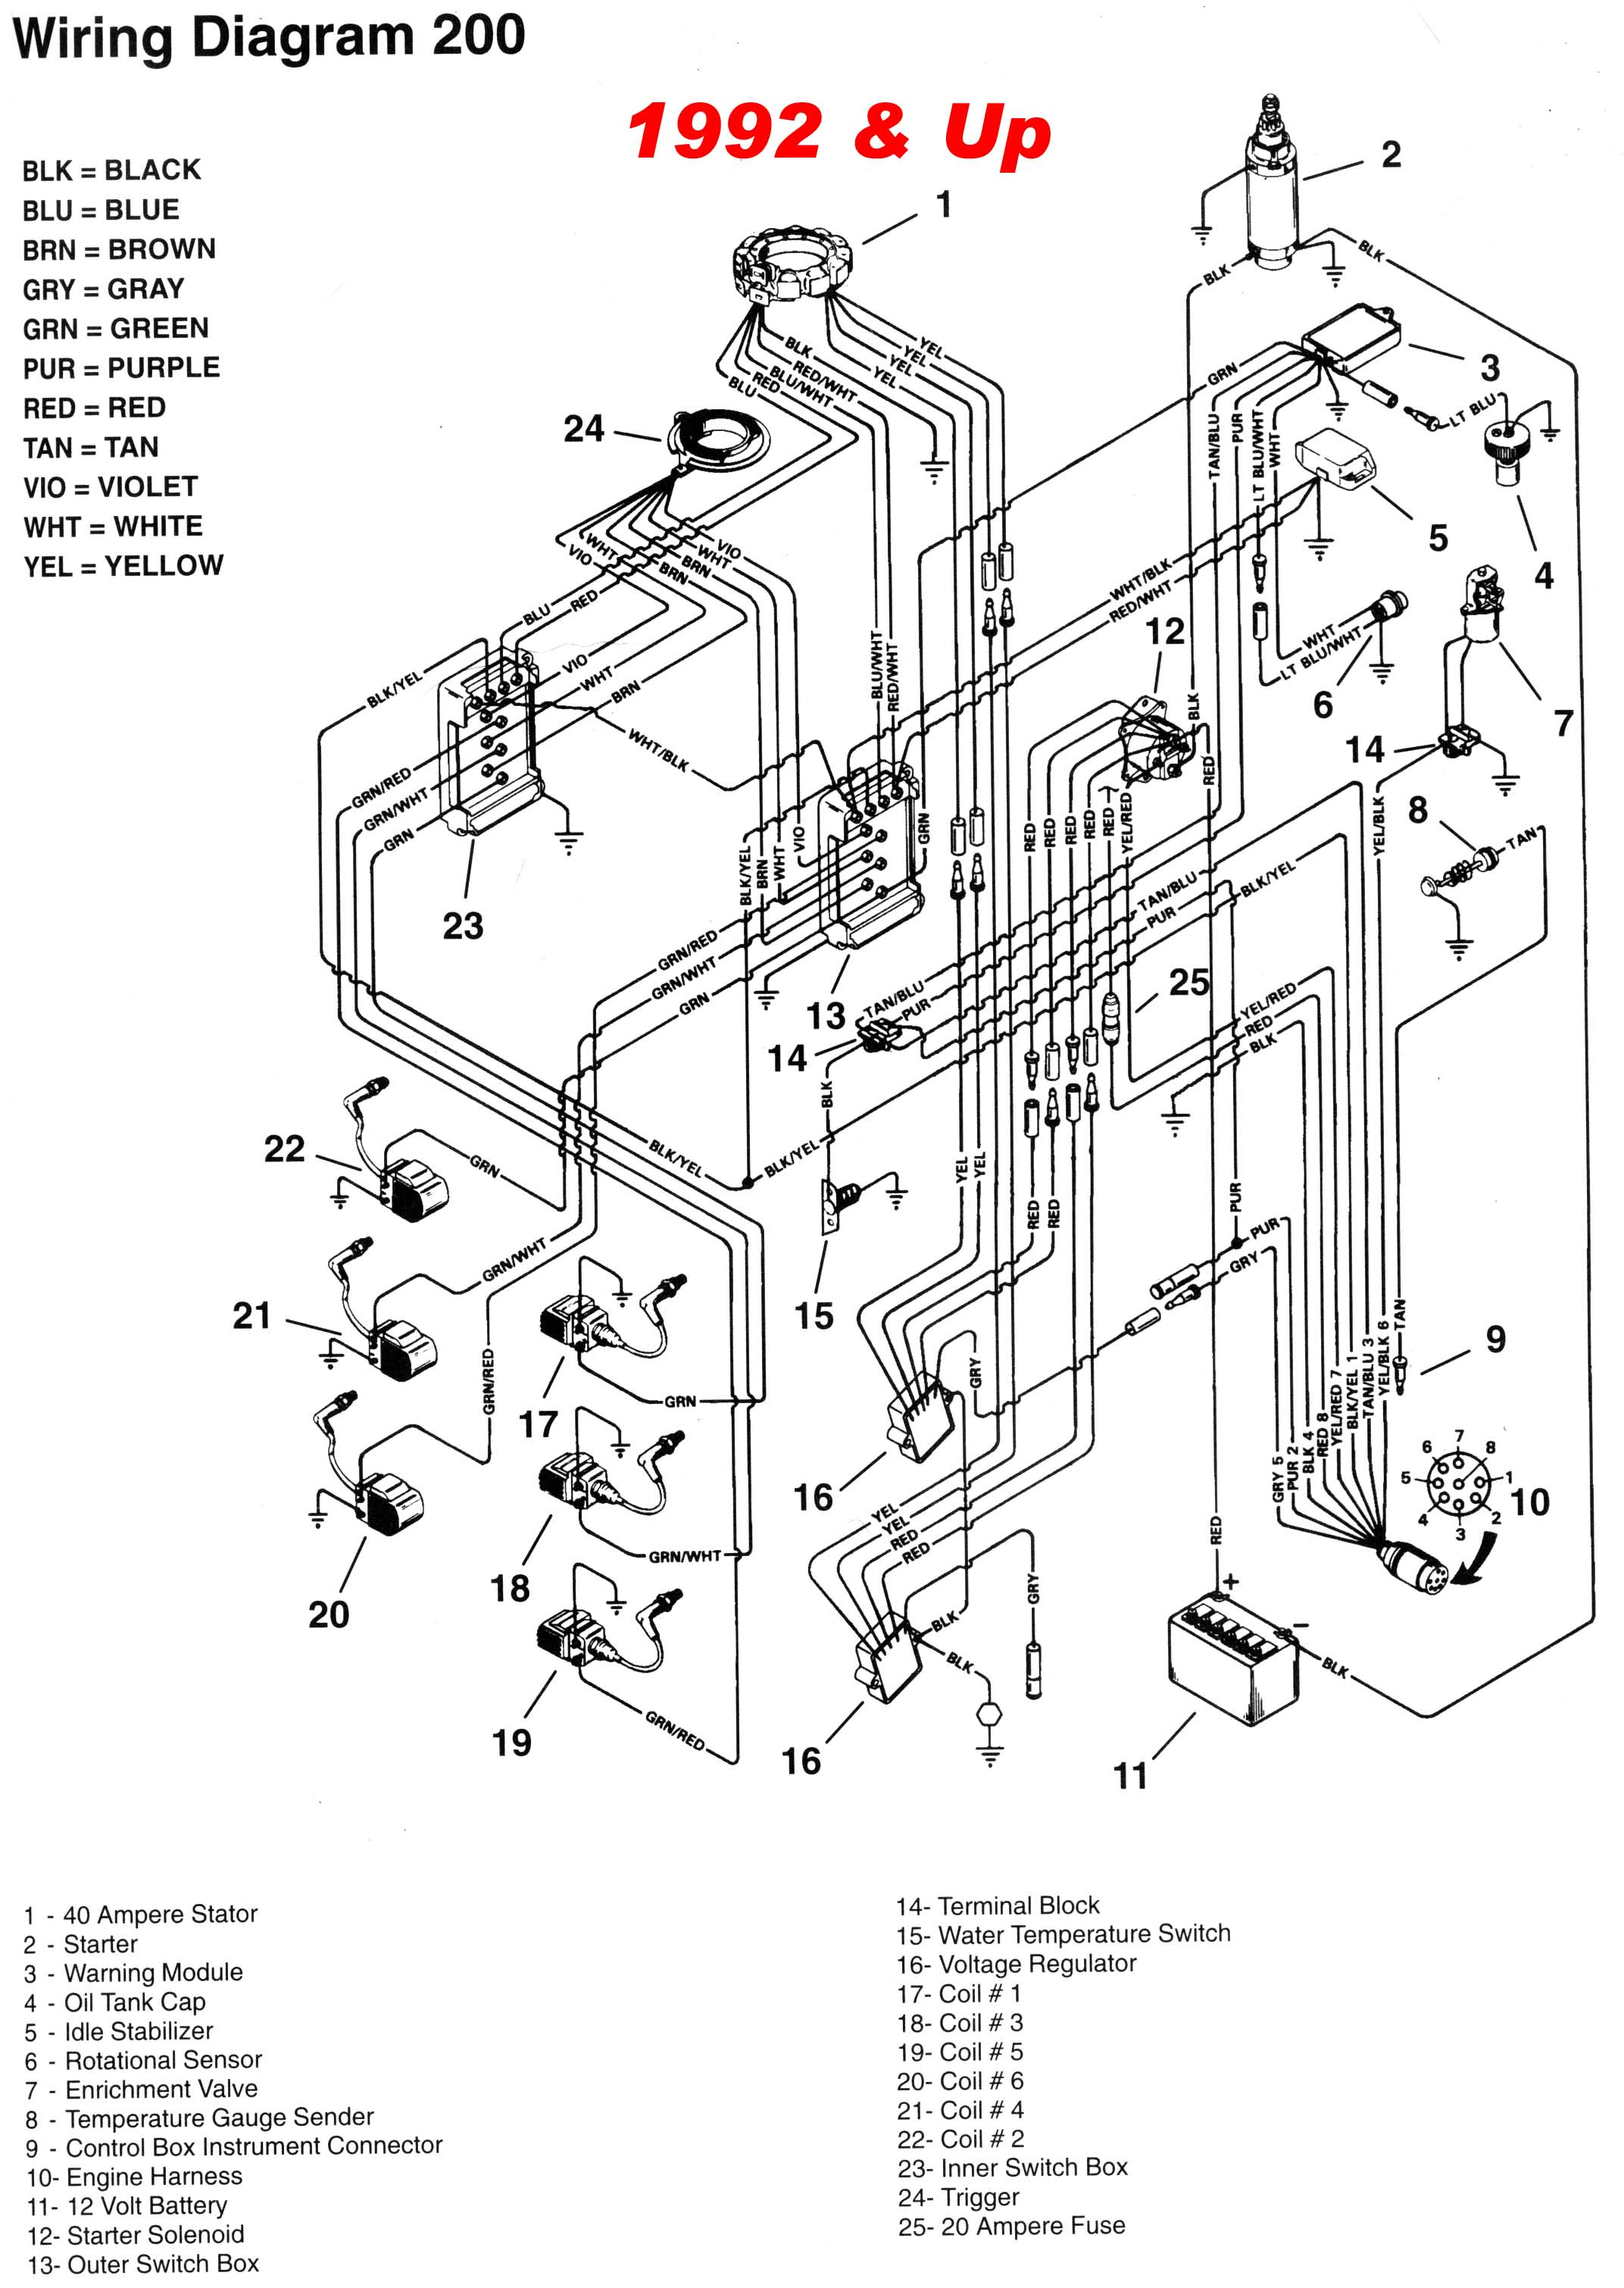 mercury outboard wiring diagram - wiring diagram 2017, Wiring diagram